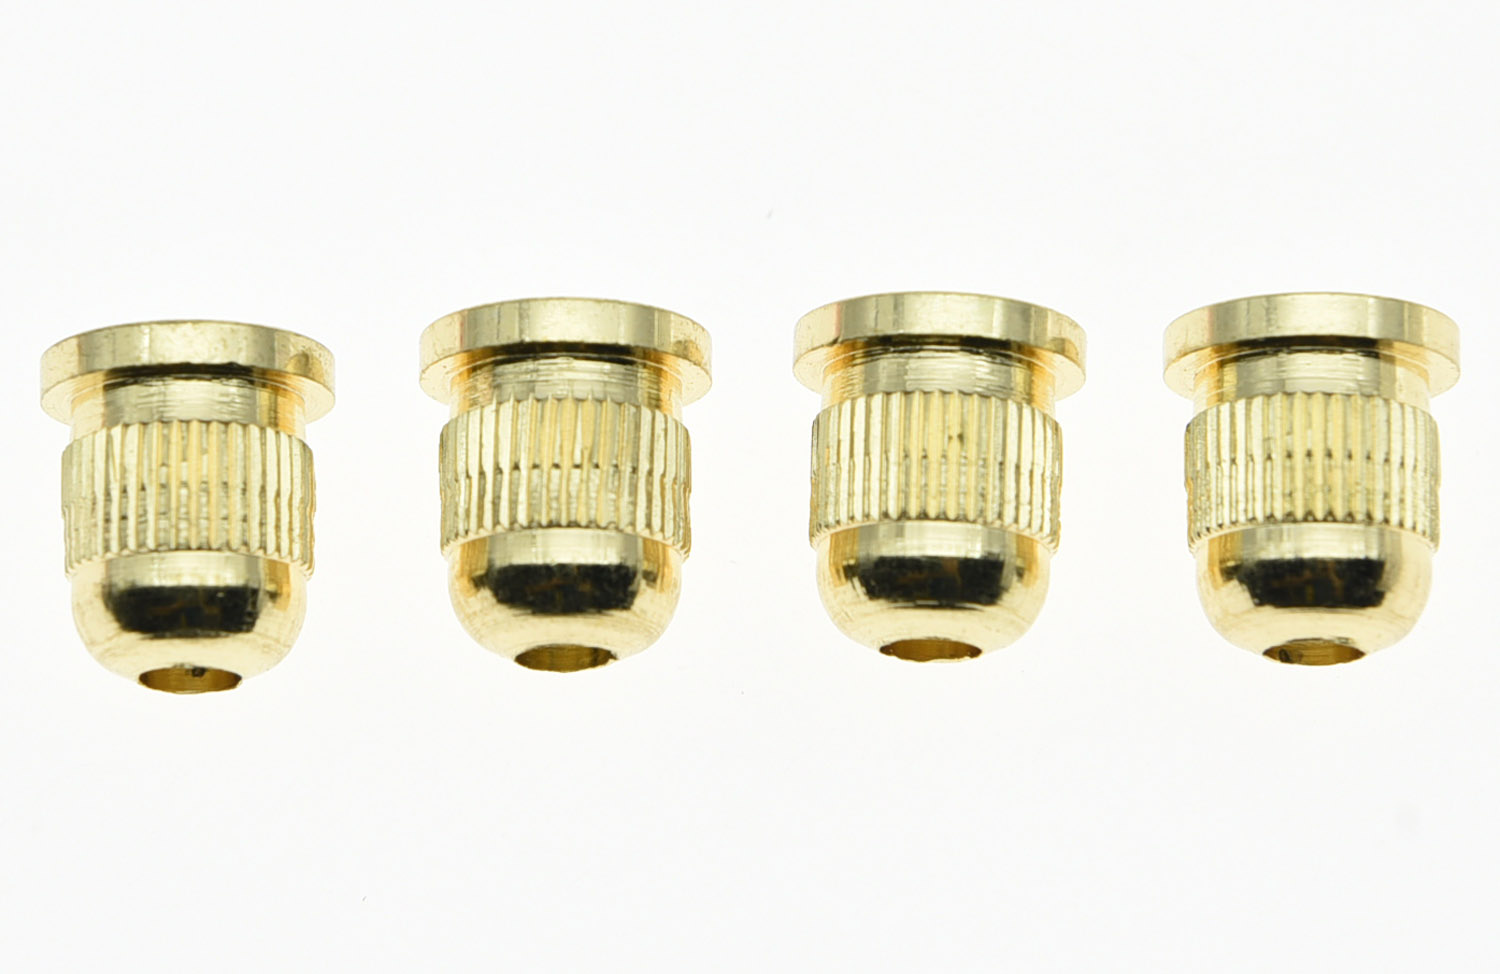 Set of 4 Gold 3/8 Inch String Mounting Ferrules Fits 4 String Bass Guitar